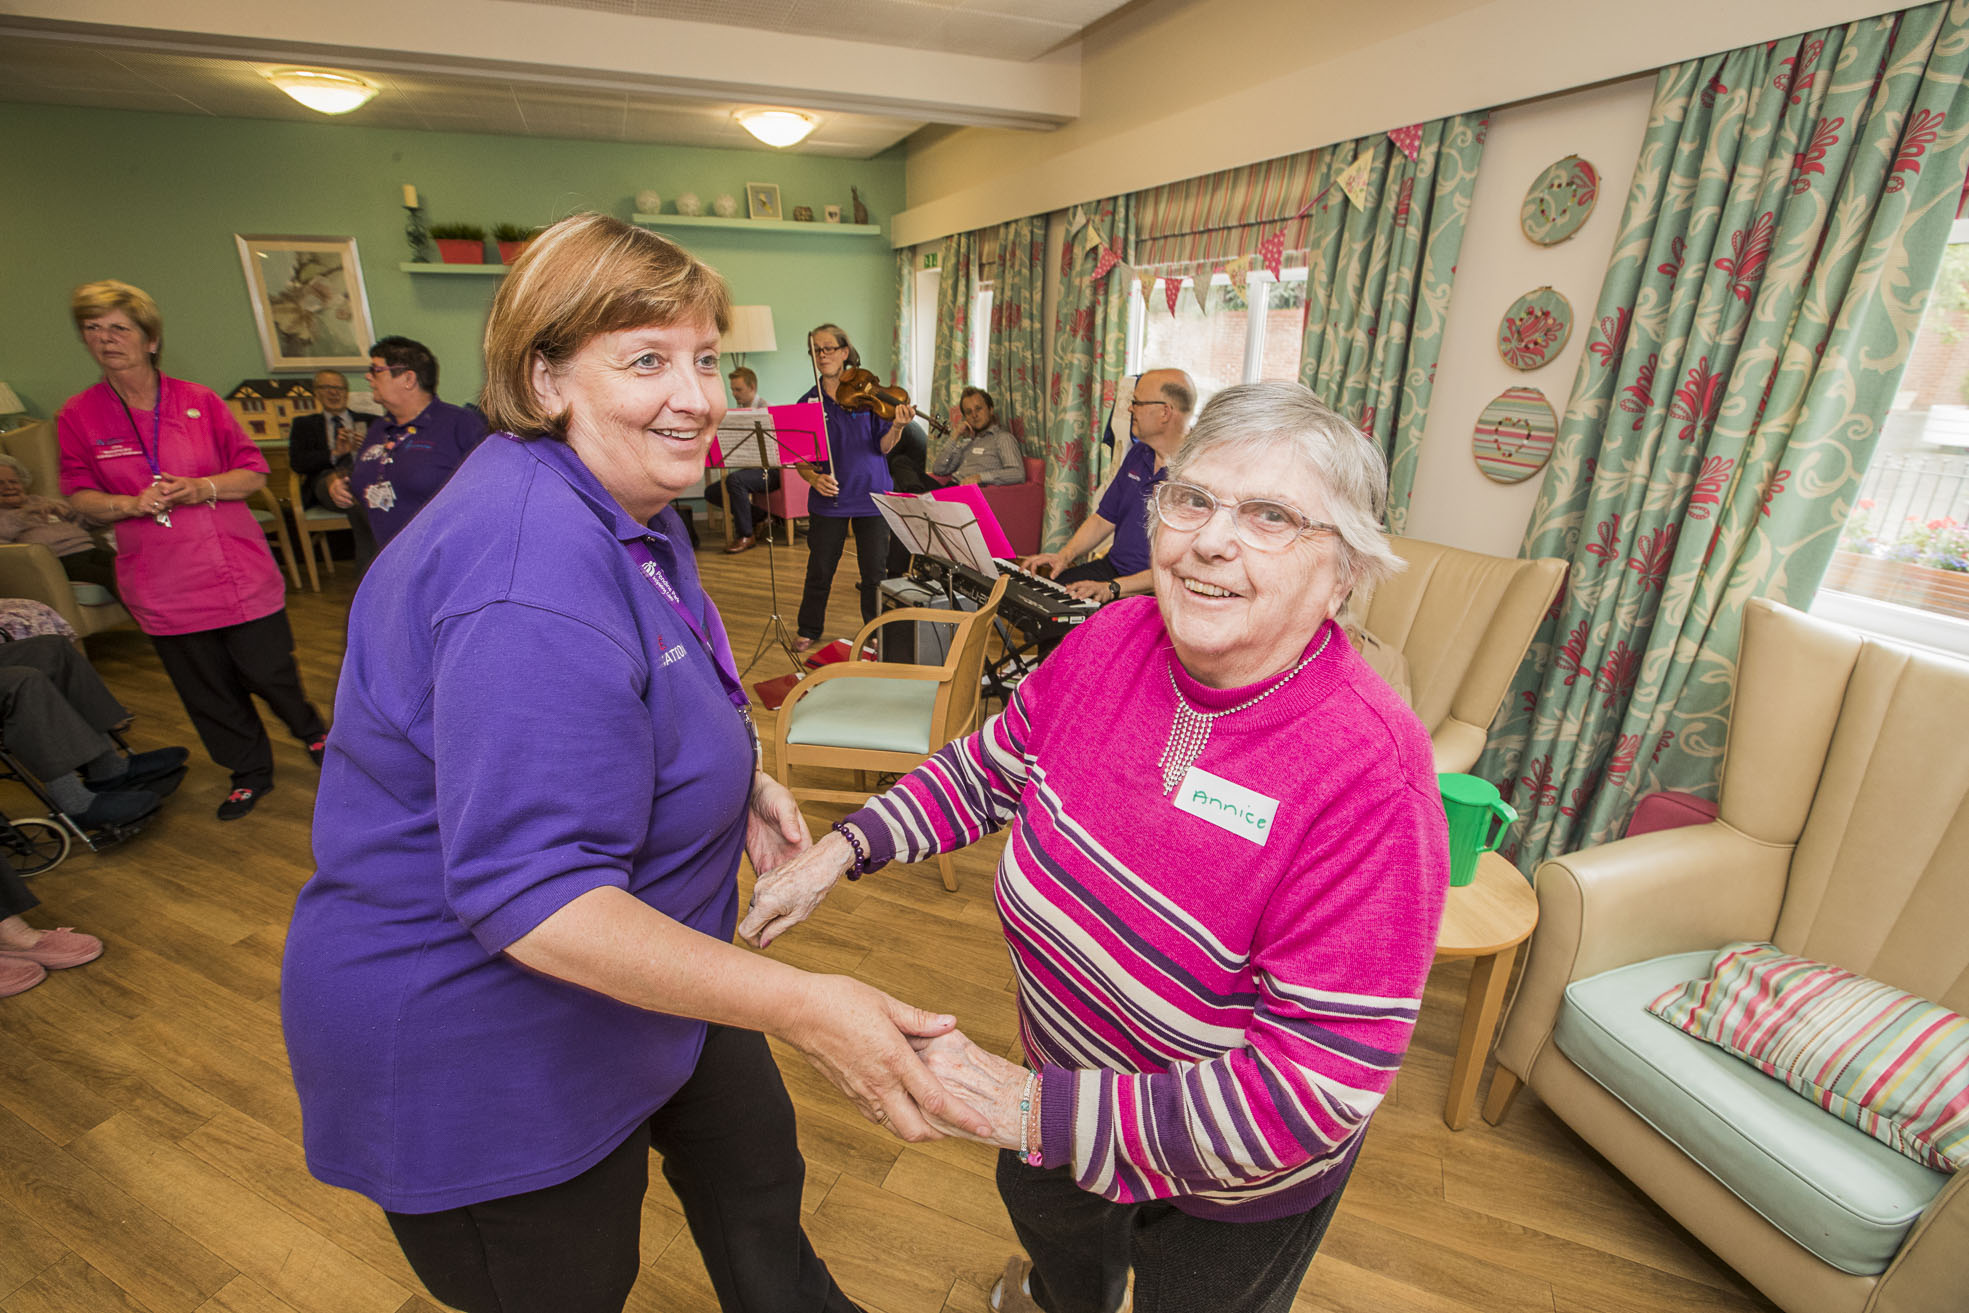 Revolutionary musical wristband hits the right note in care home